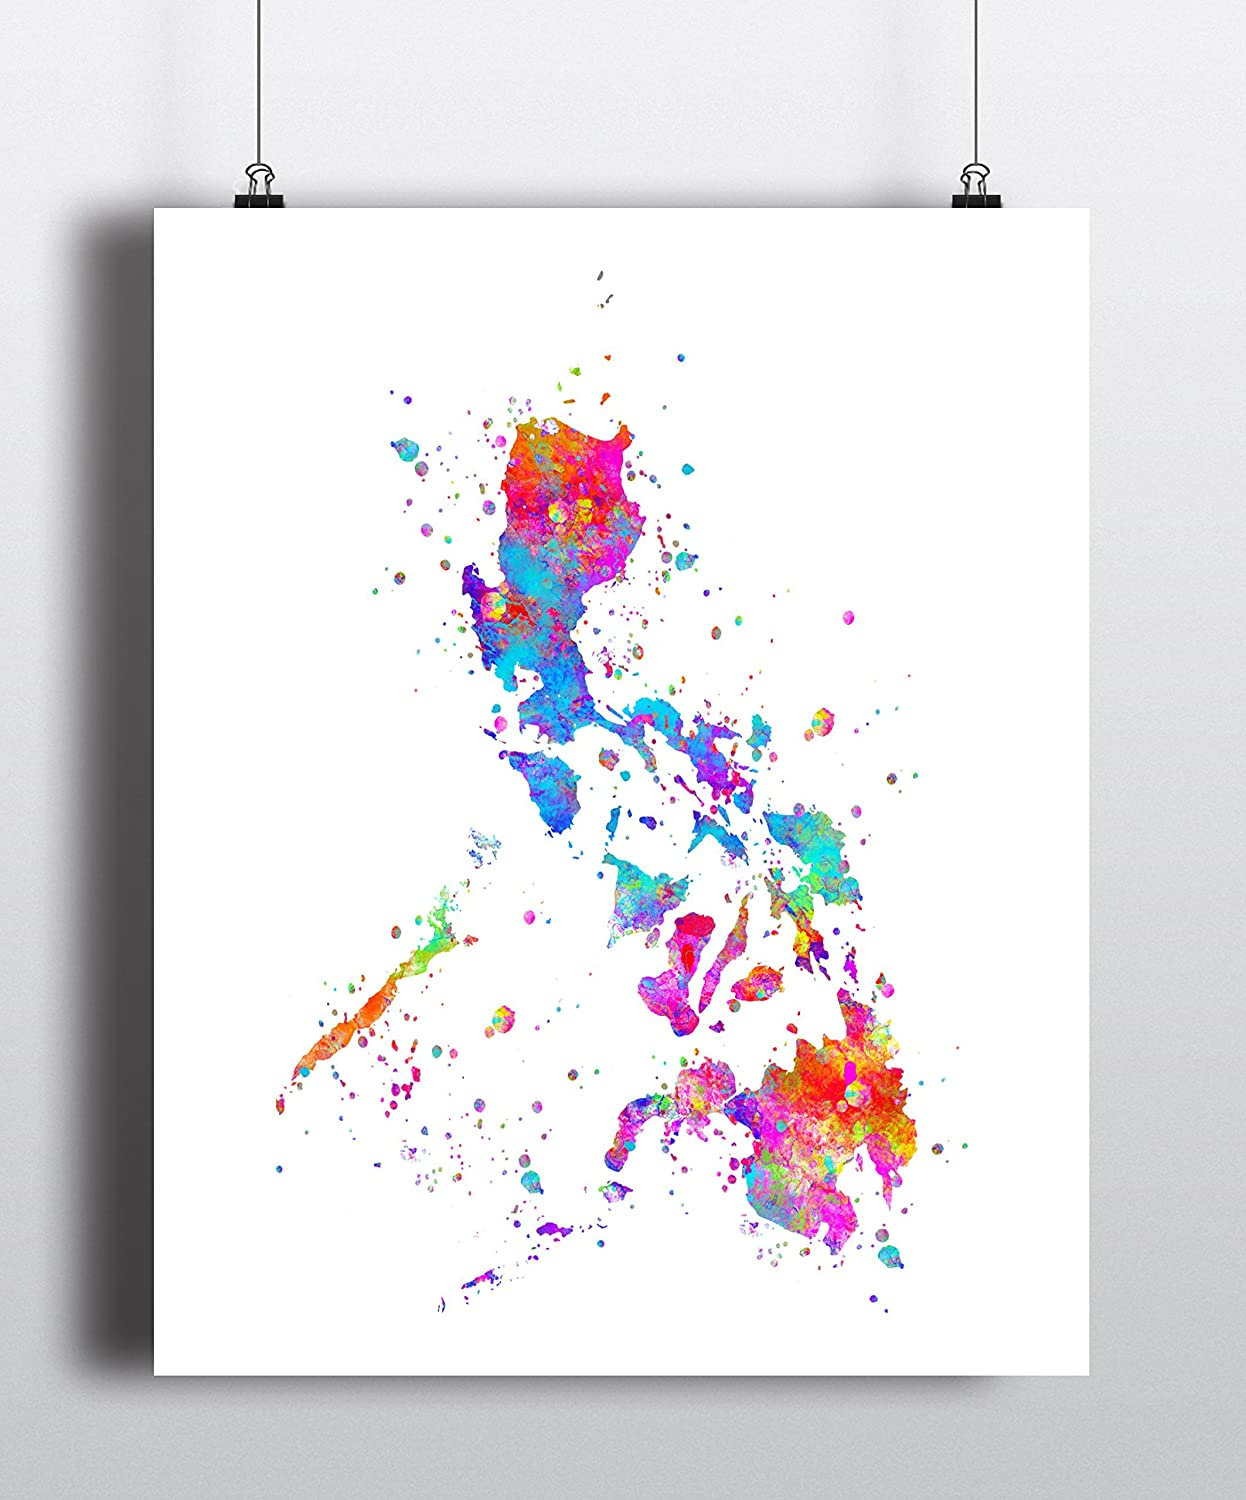 Philippines Watercolor Map Wall Art Home Decor Poster Artwork Print UNFRAMED